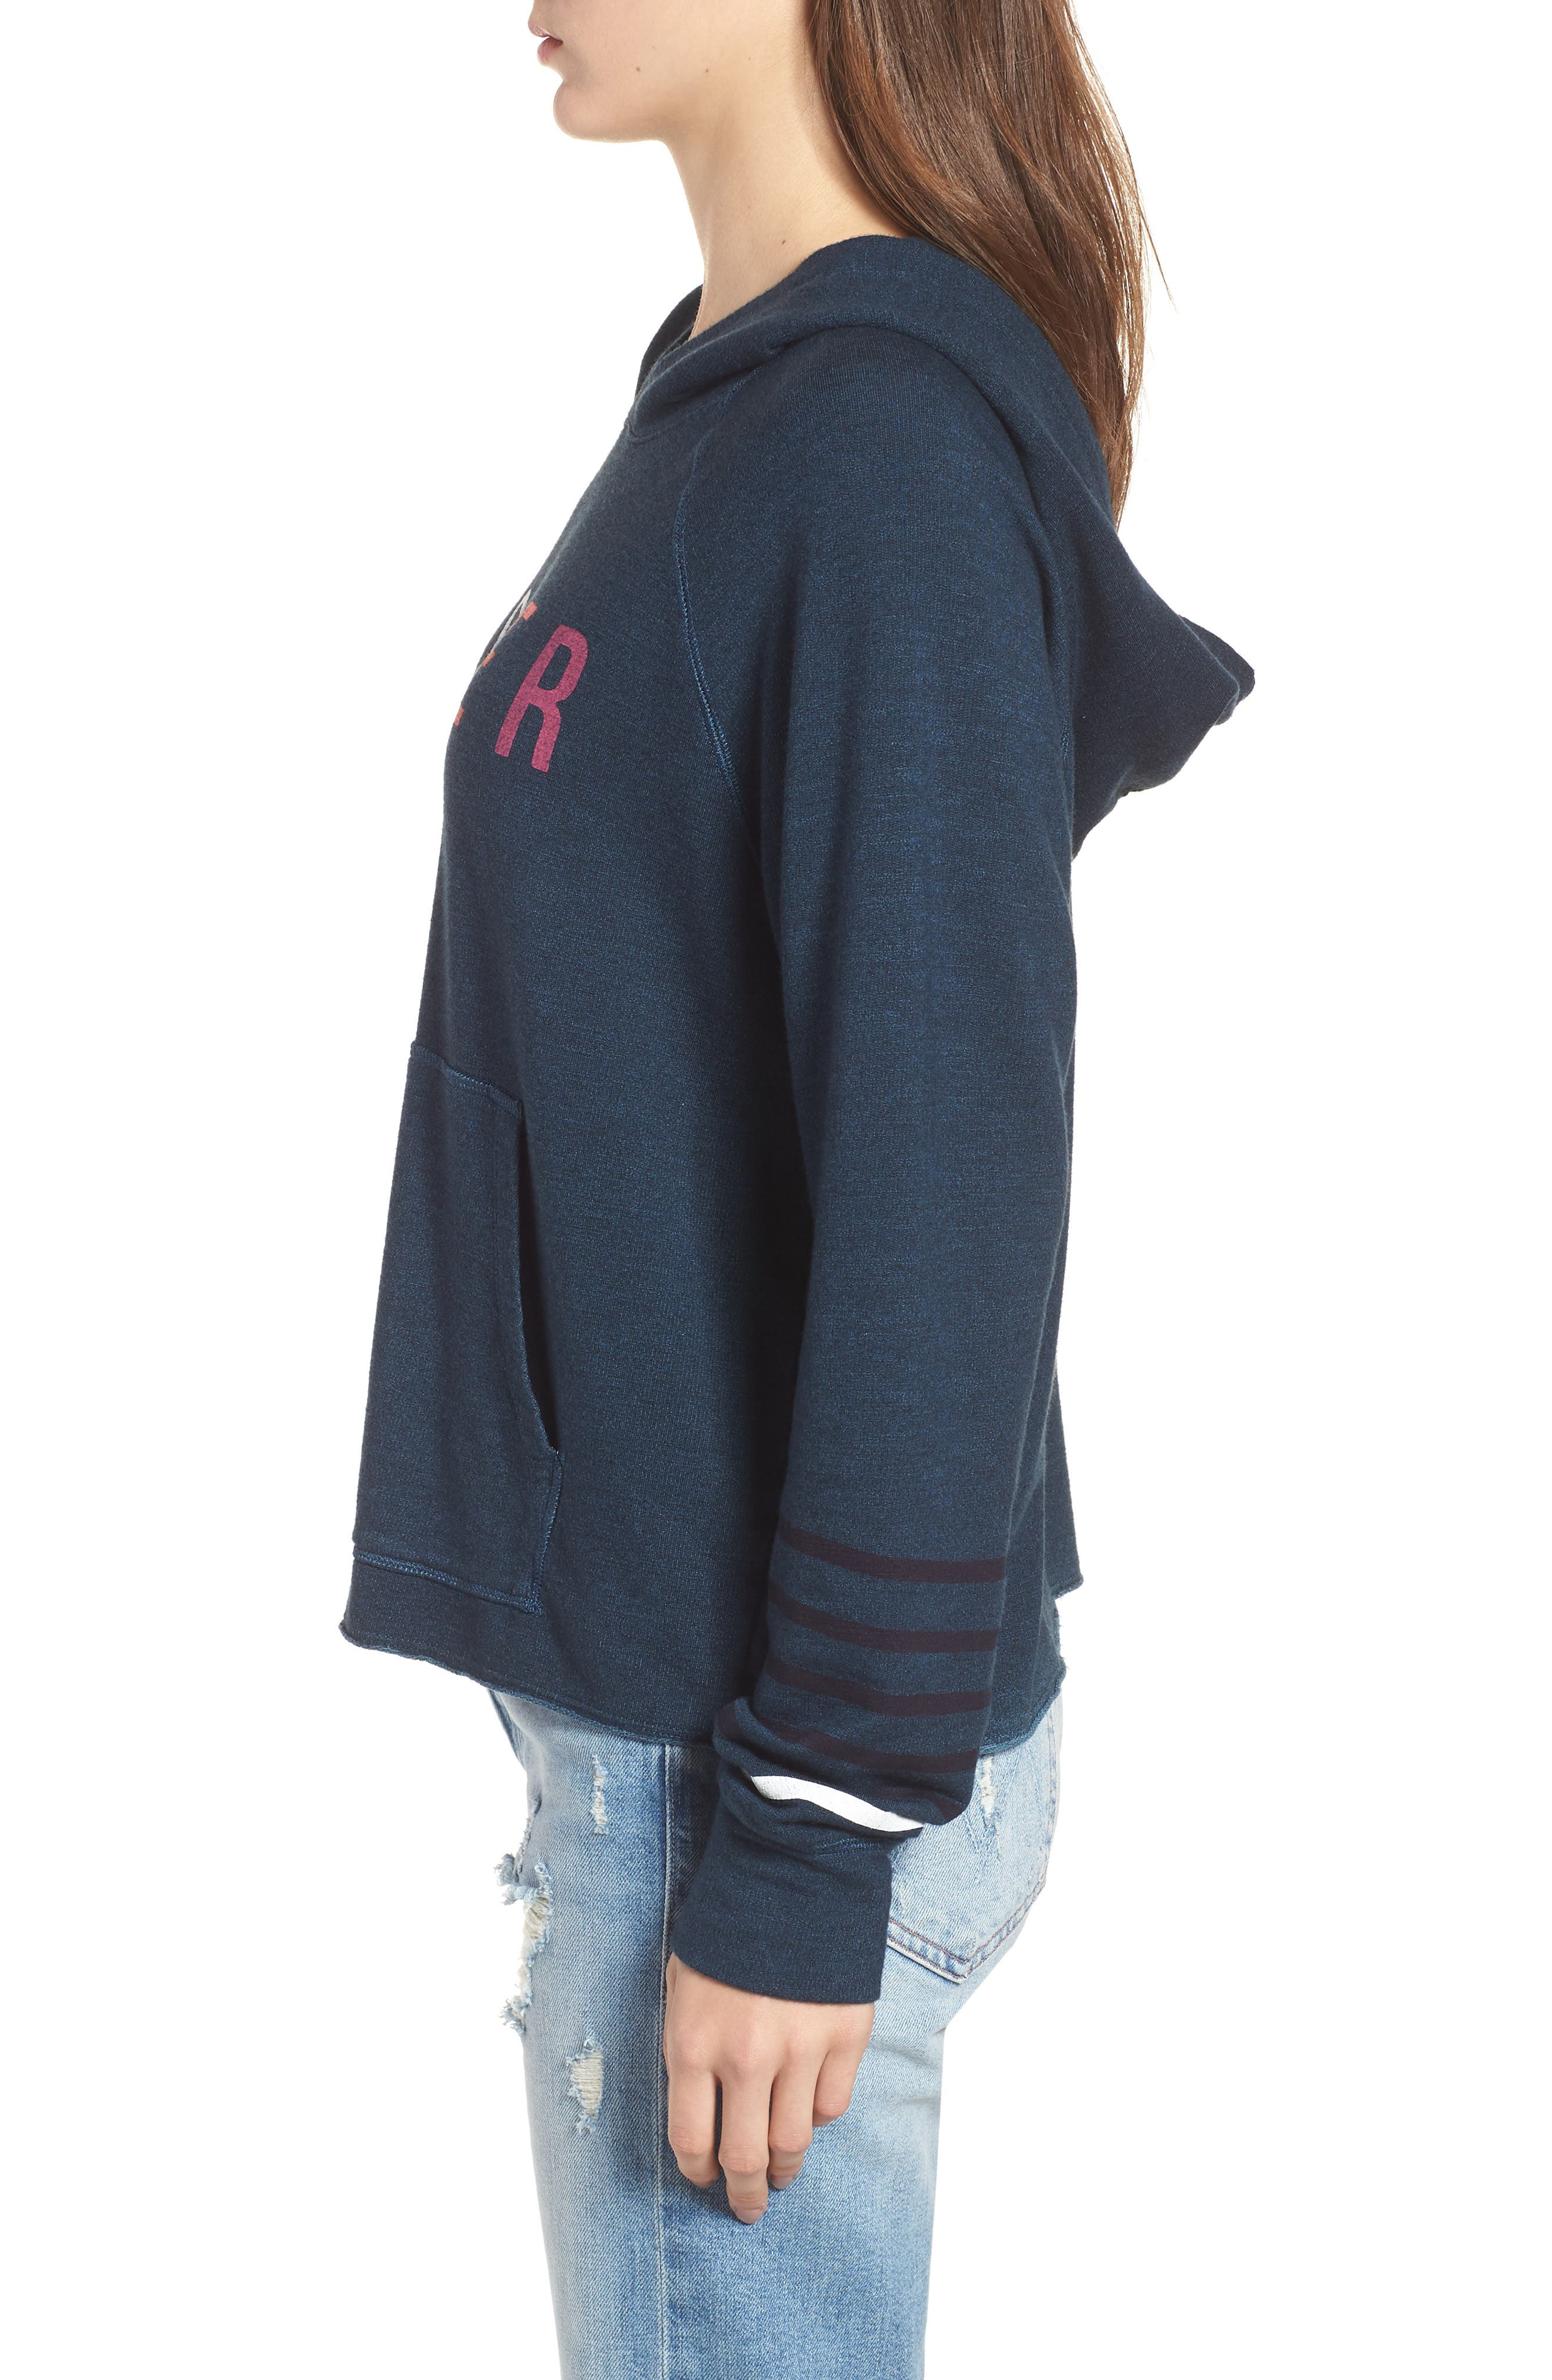 SUNDRY,                             Lover Active Crop Hoodie,                             Alternate thumbnail 3, color,                             405